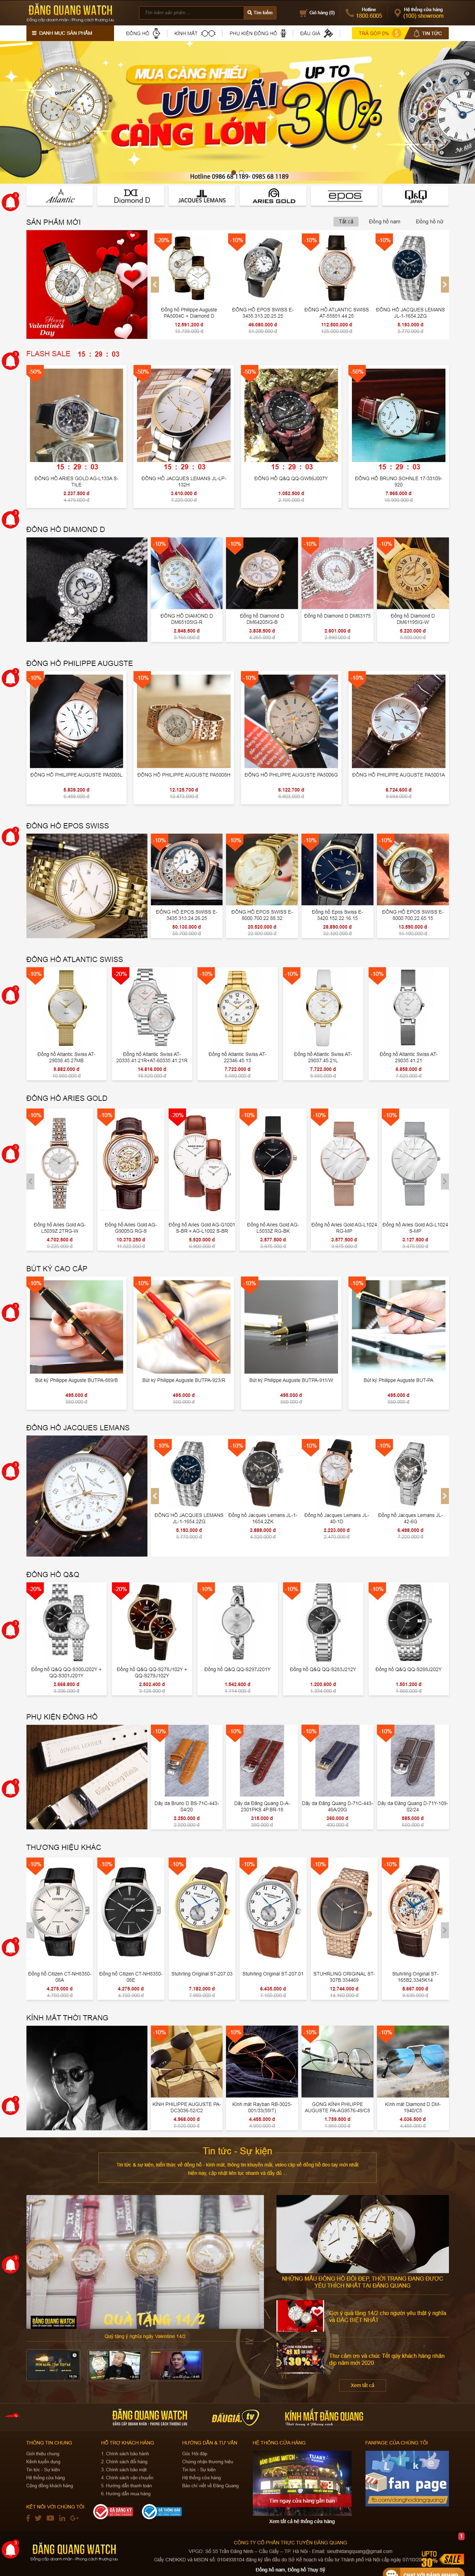 Thiết kế Website đồng hồ - www.dangquangwatch.vn